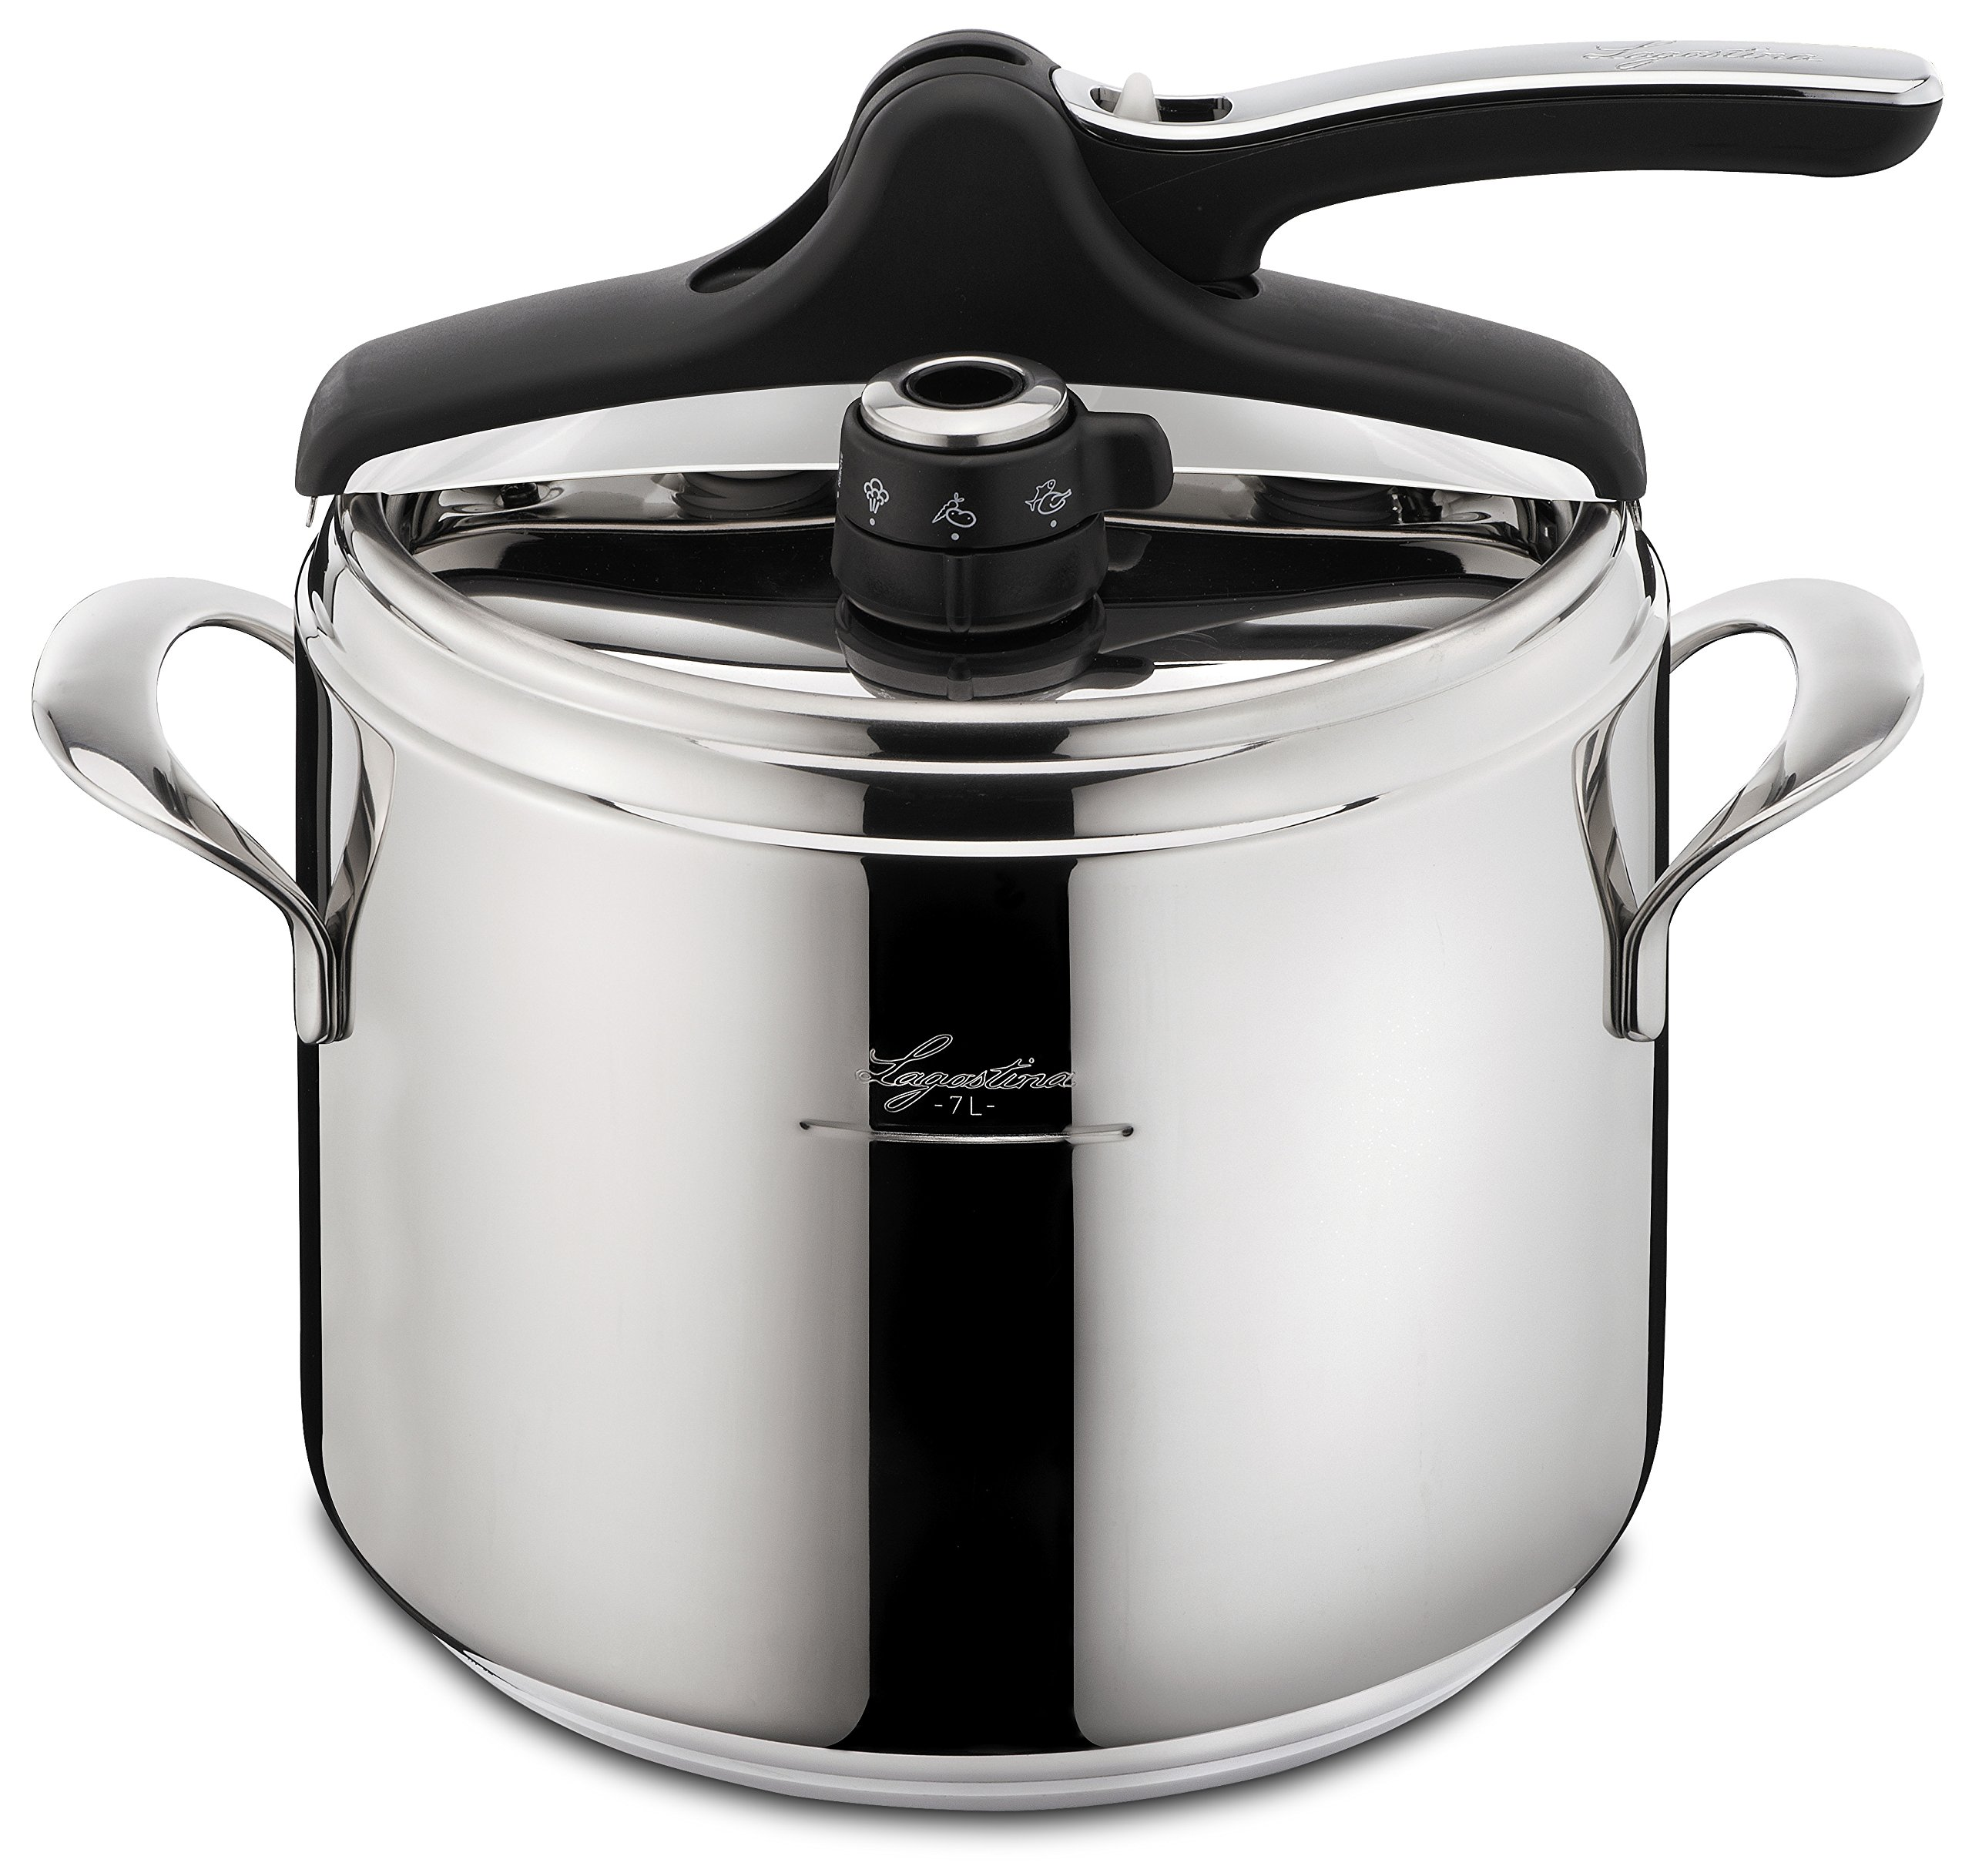 Lagostina Q5510664 Domina Vitamin Polished Stainless Steel Induction Safe 6 / 10-PSI Pressure Cooker Cookware, 7.4-Quart, Silver